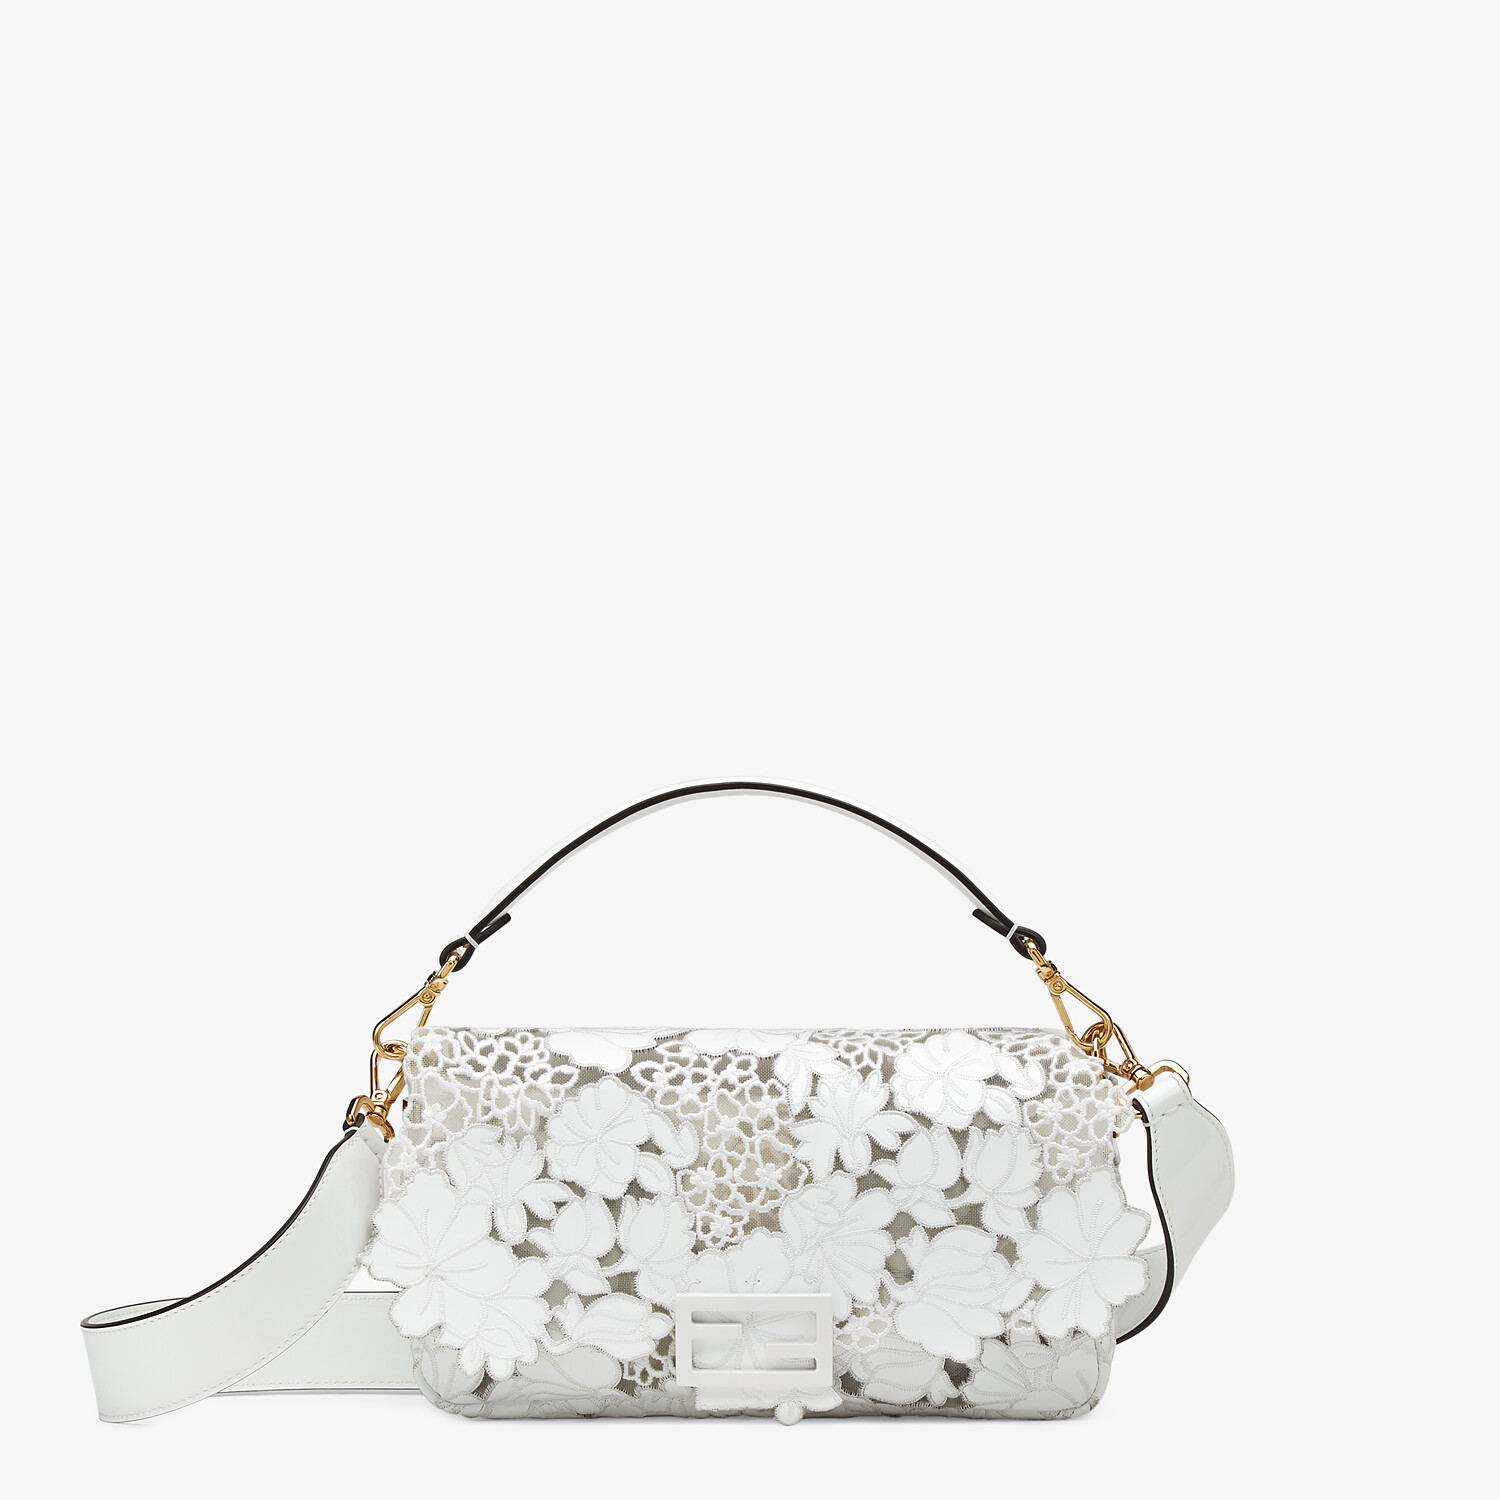 FENDI BAGUETTE - Embroidered white patent leather bag - view 1 detail